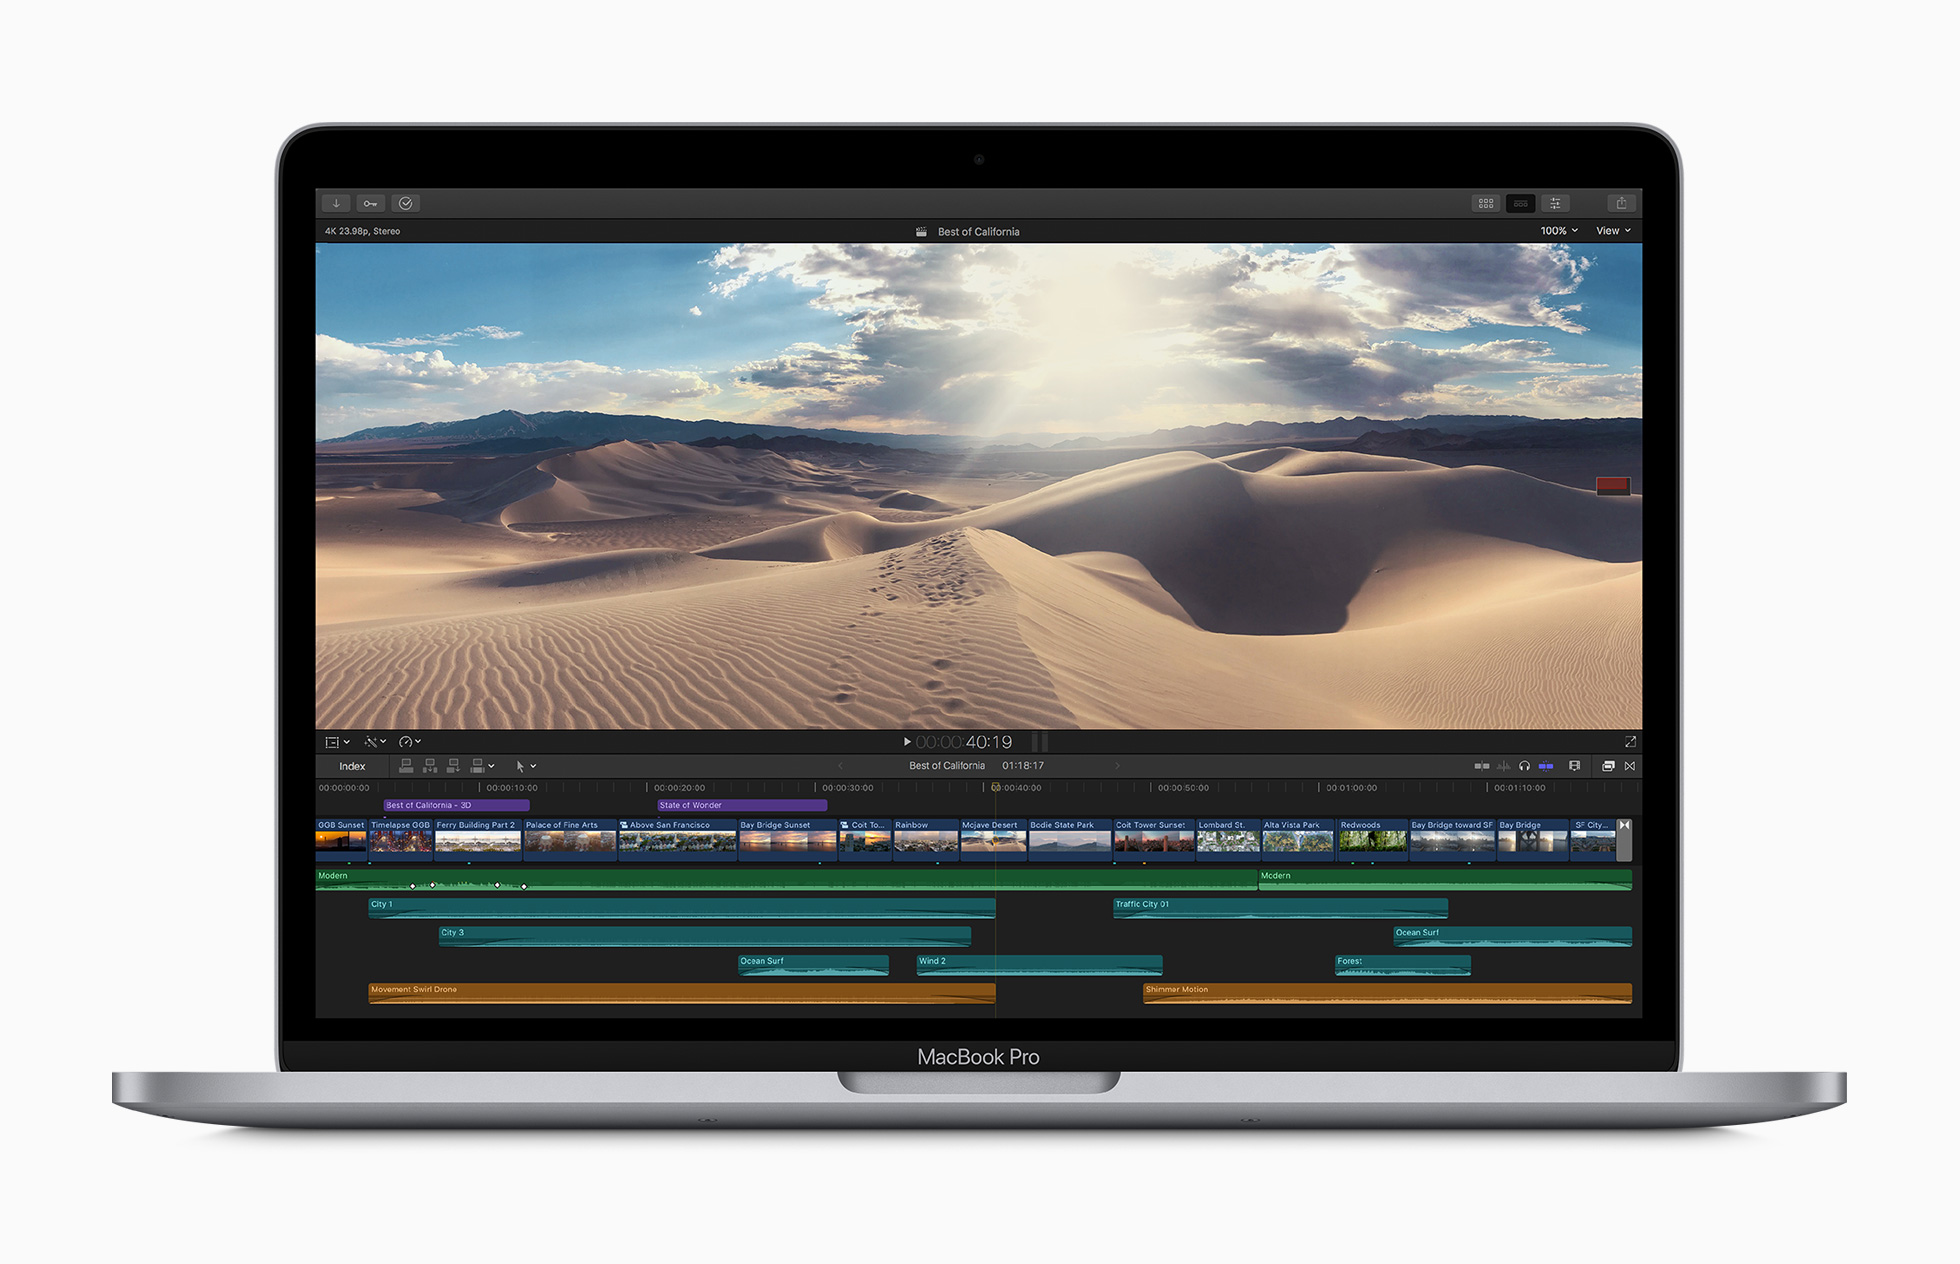 Apple_macbook_pro-13-inch-with-final-cut-pro_screen_05042020